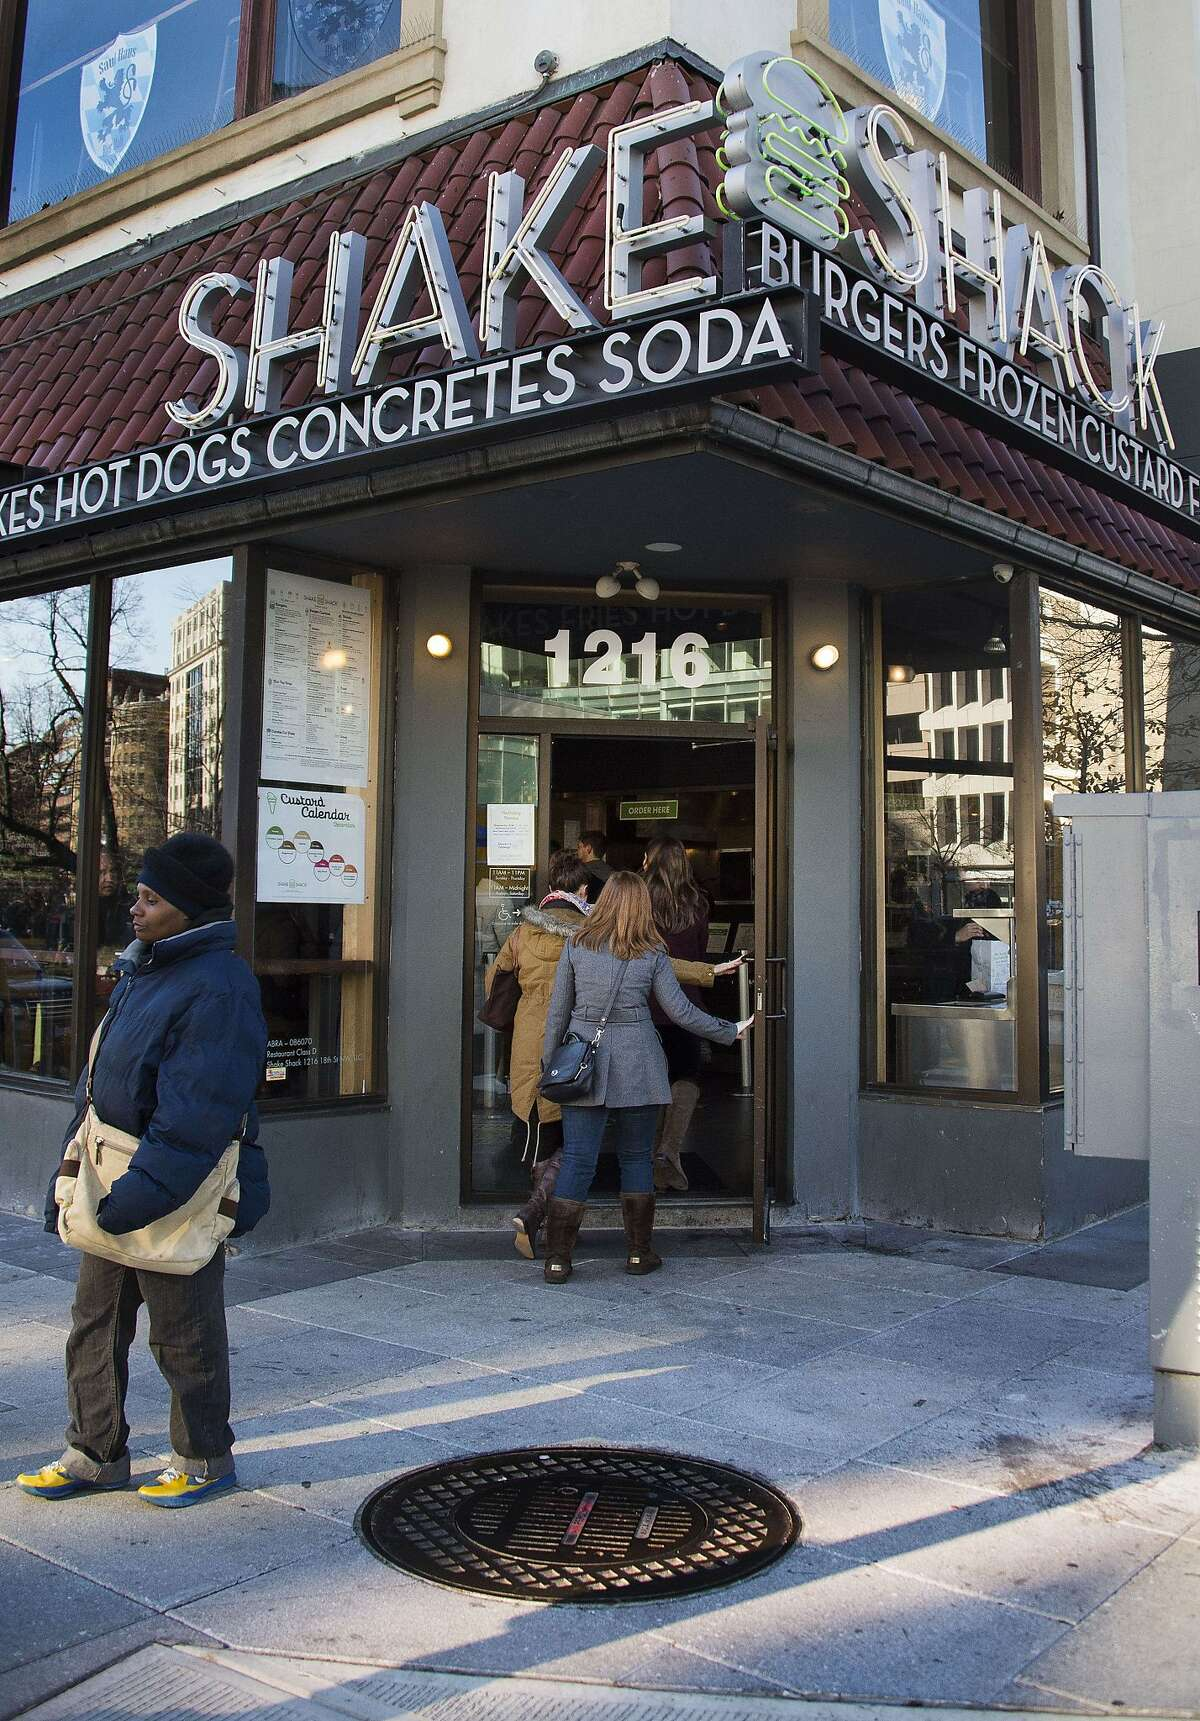 A general view of the restaurant Shake Shack in Washington, DC, December 30, 2014. The fast-food chain, started by celebrity restaurateur Danny Meyer, filed to go public on December 29, 2014. Backed by private equity firm Leonard Green & Partners, Shake Shack is a self-described modern day roadside burger stand whose vision is to stand for something good. AFP PHOTO/JIM WATSONJIM WATSON/AFP/Getty Images